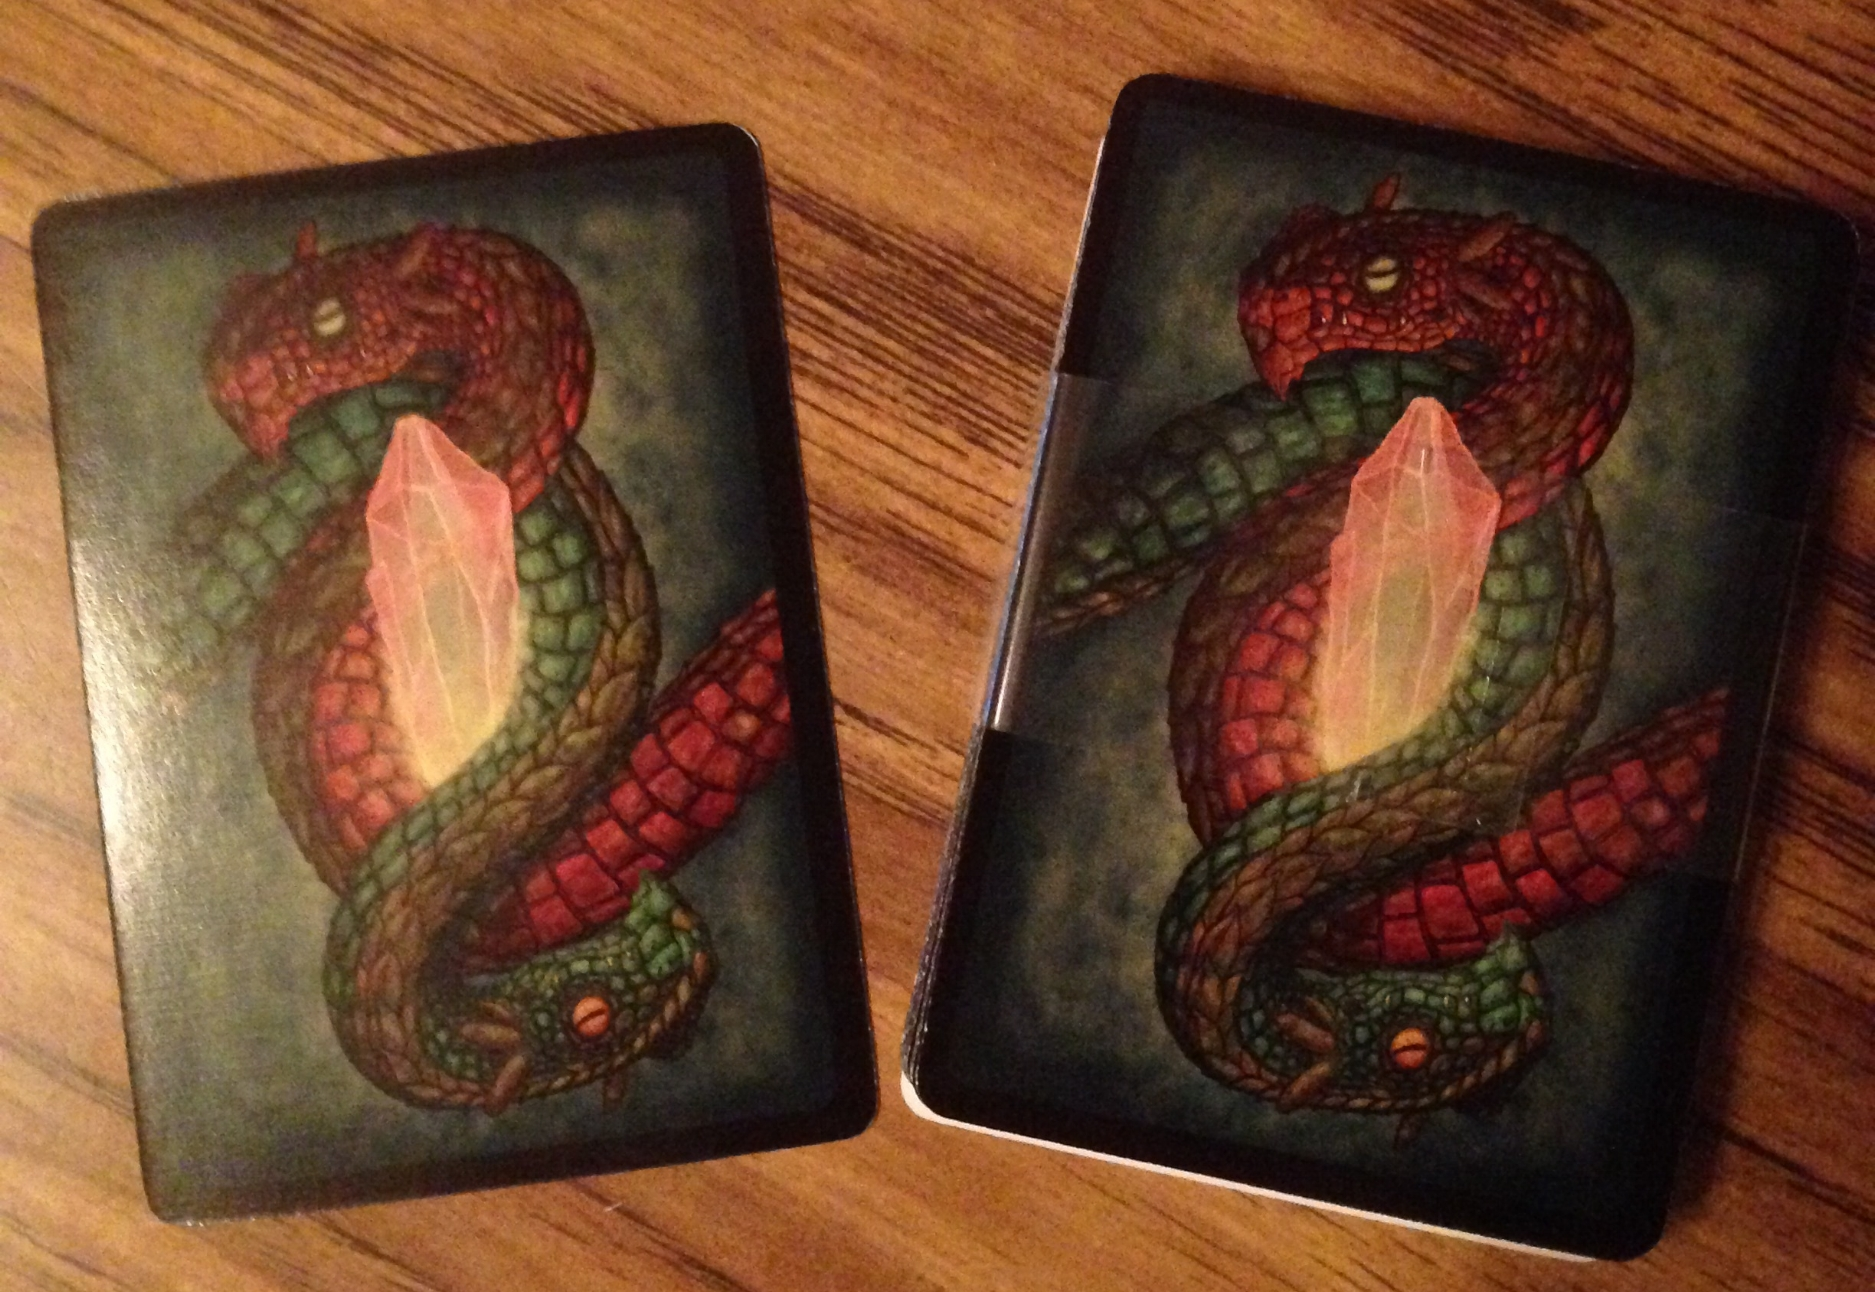 We even fixed the card backs!